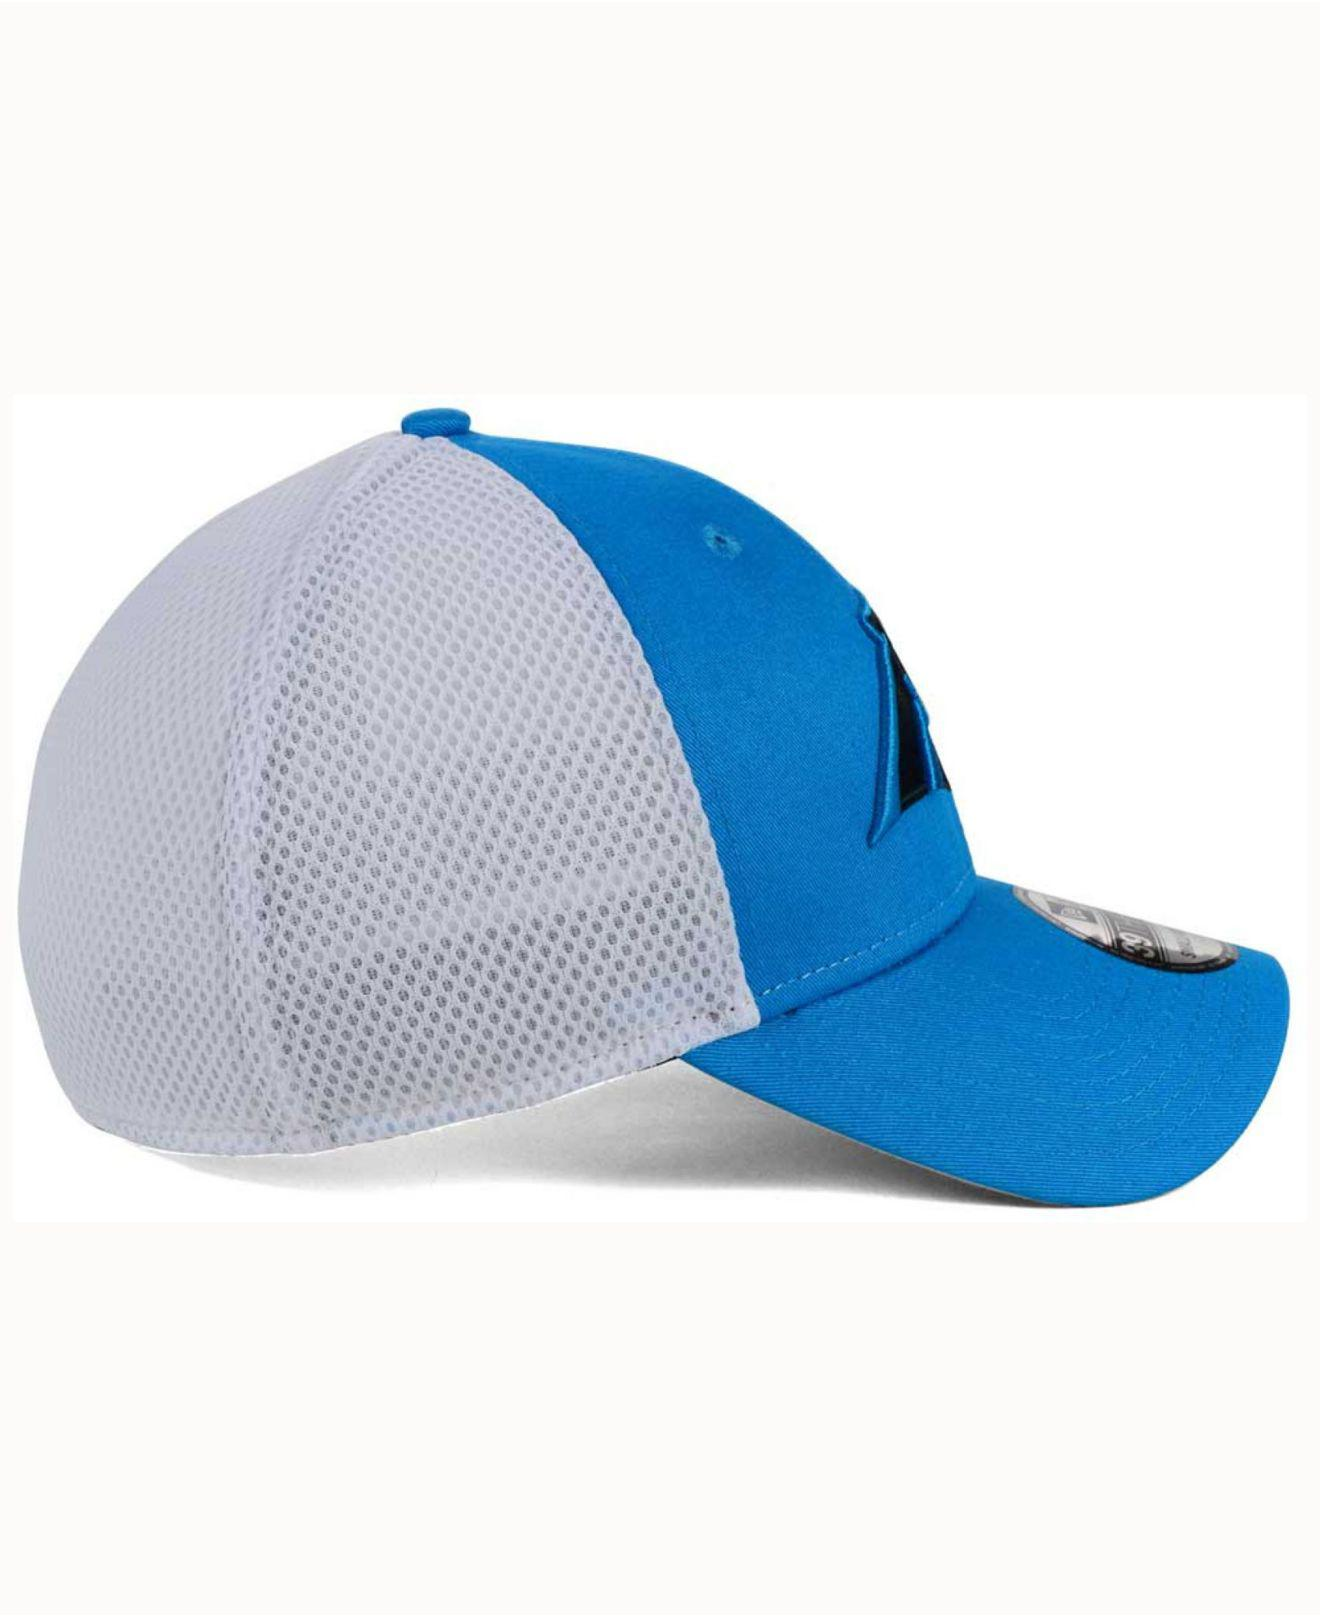 half off 2a75e 16552 ... authentic neo builder 39thirty cap for men lyst. view fullscreen 09d31  6565b